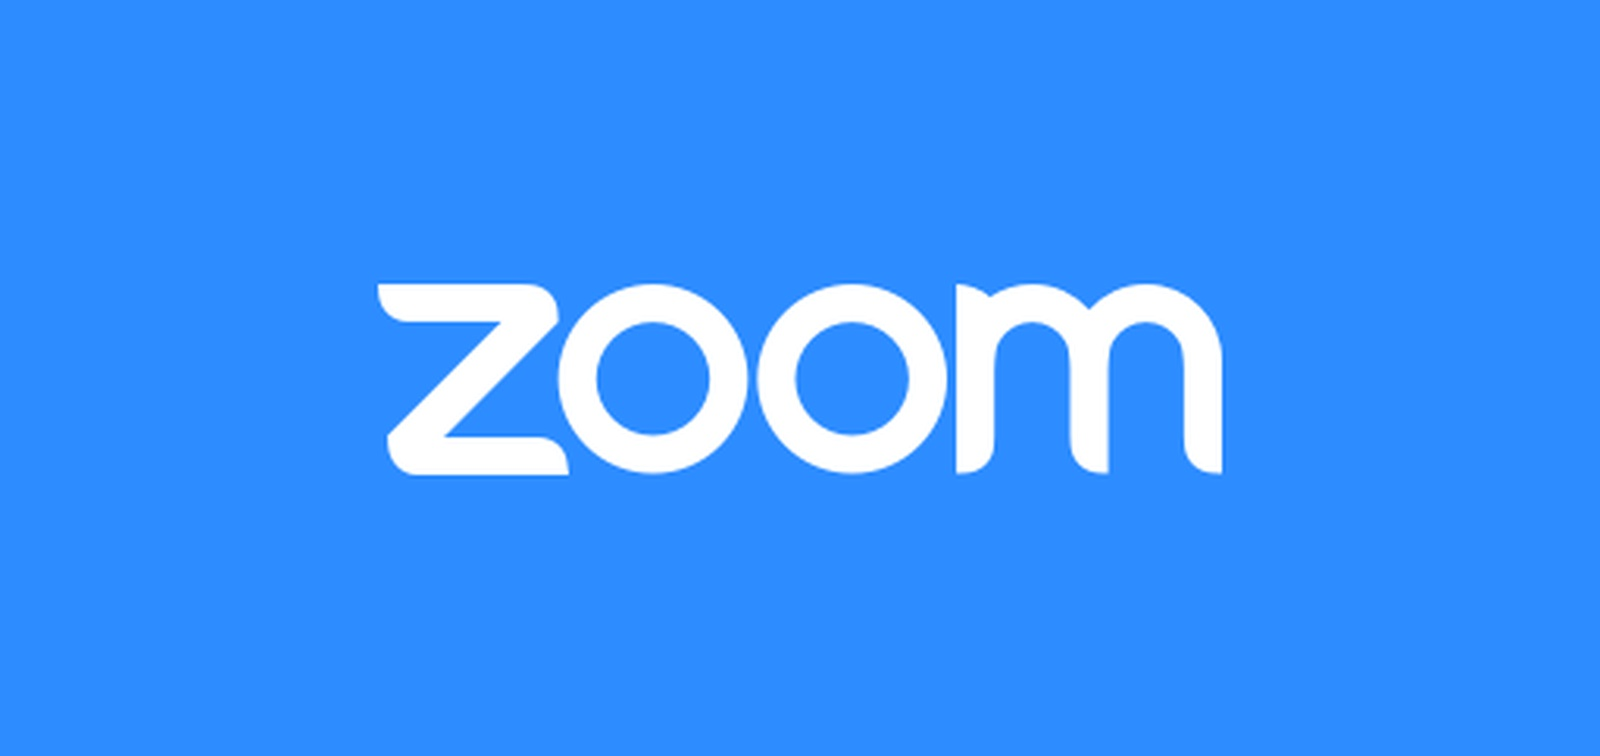 How Zoom became one of this year's biggest tech IPOs